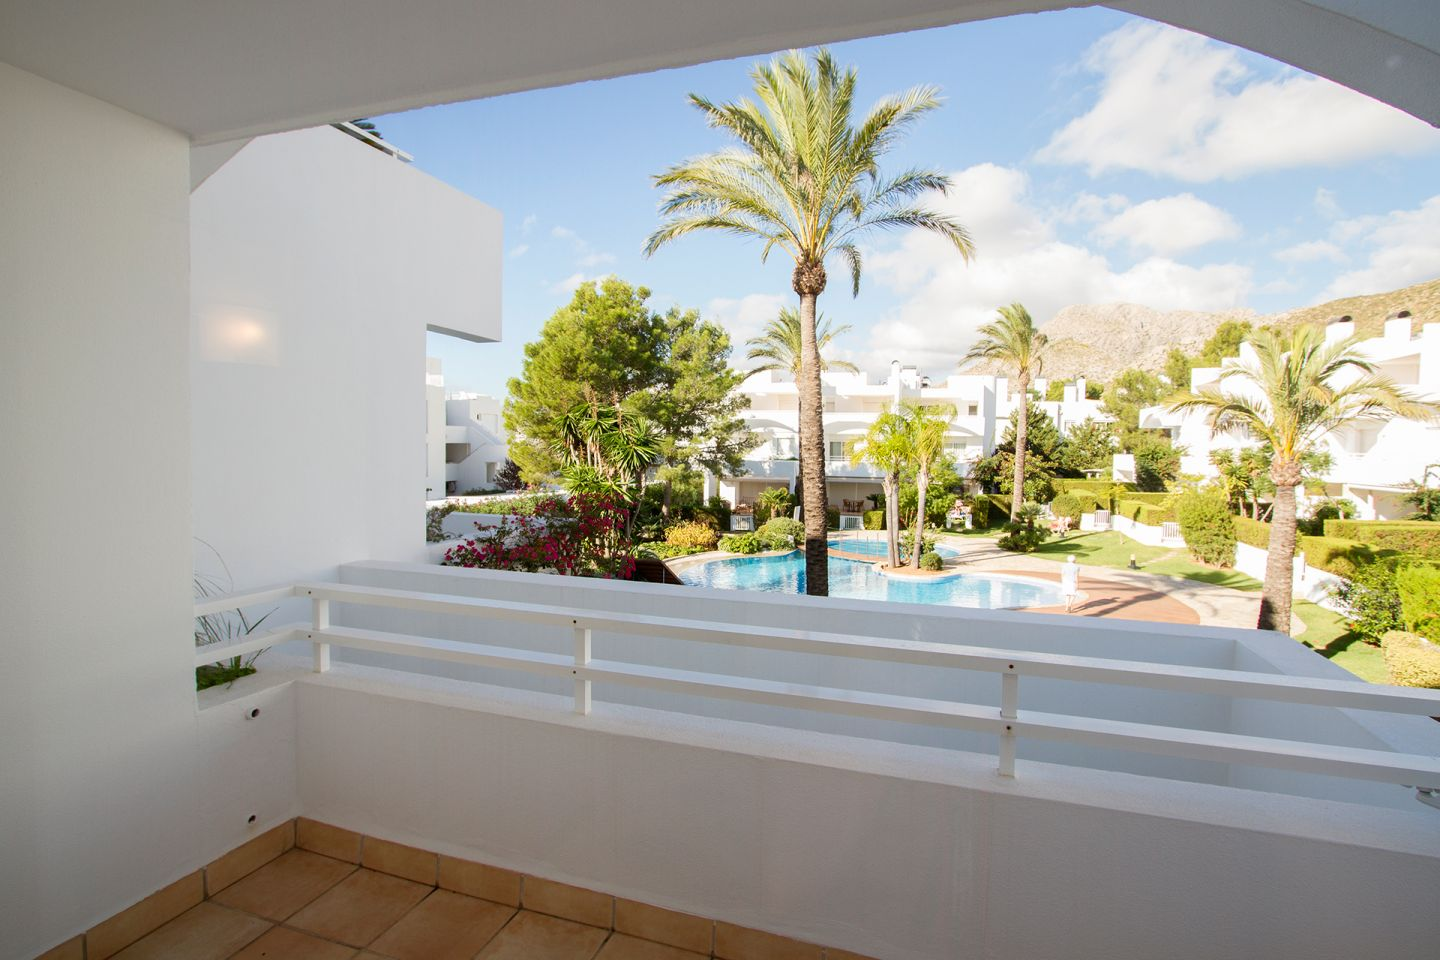 4 Bed Semidetached House for sale in PUERTO POLLENSA 17